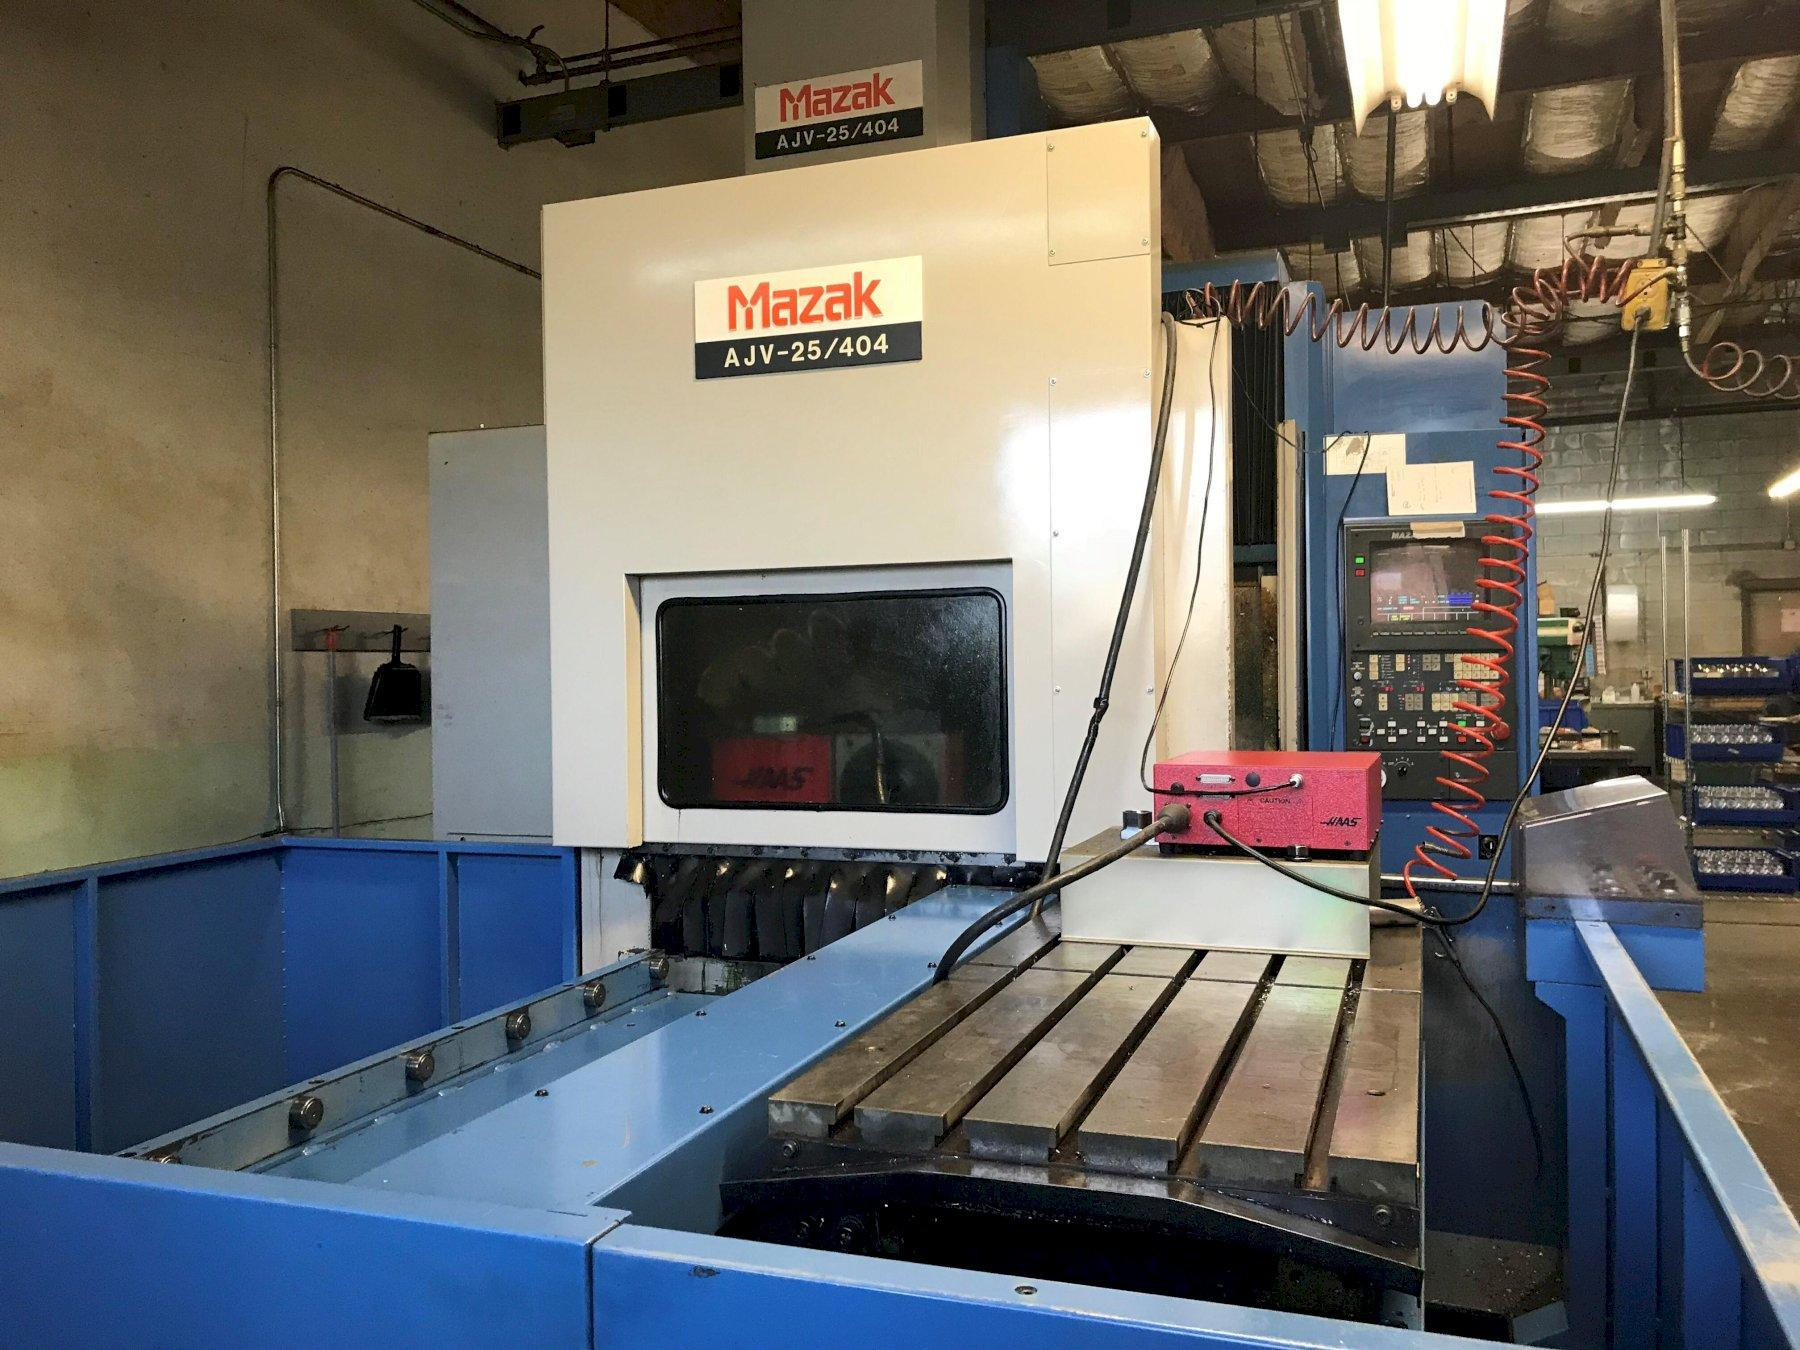 "Mazak AJV 25/404 Double Column VMC; 2 Pallet Changer, M-32 Control, 40"" x 20"" x 18"" Travels, Chip Conveyor"